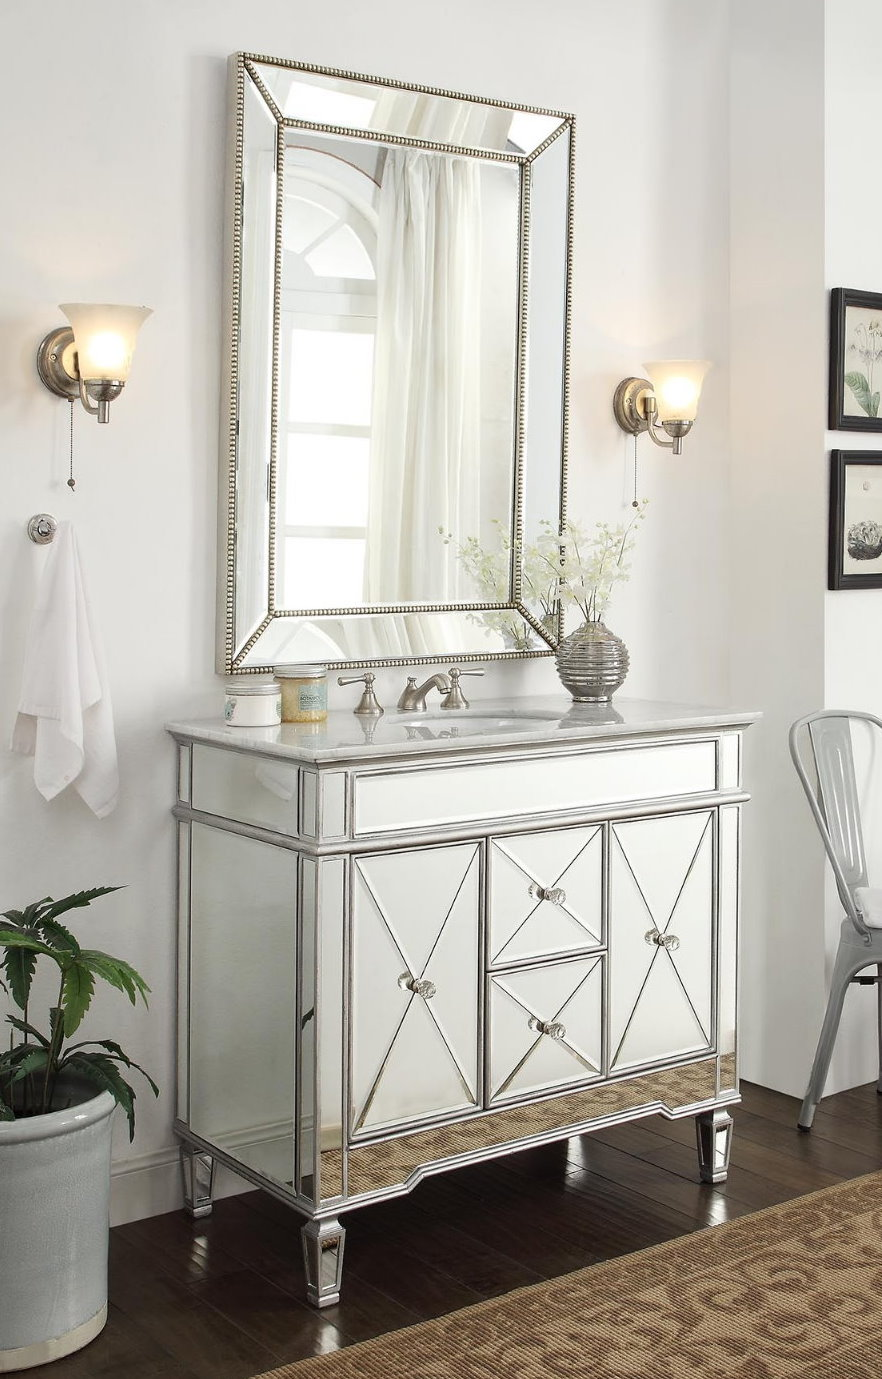 44 Inch Adelina Mirrored Bathroom Vanity Cabinet White Top